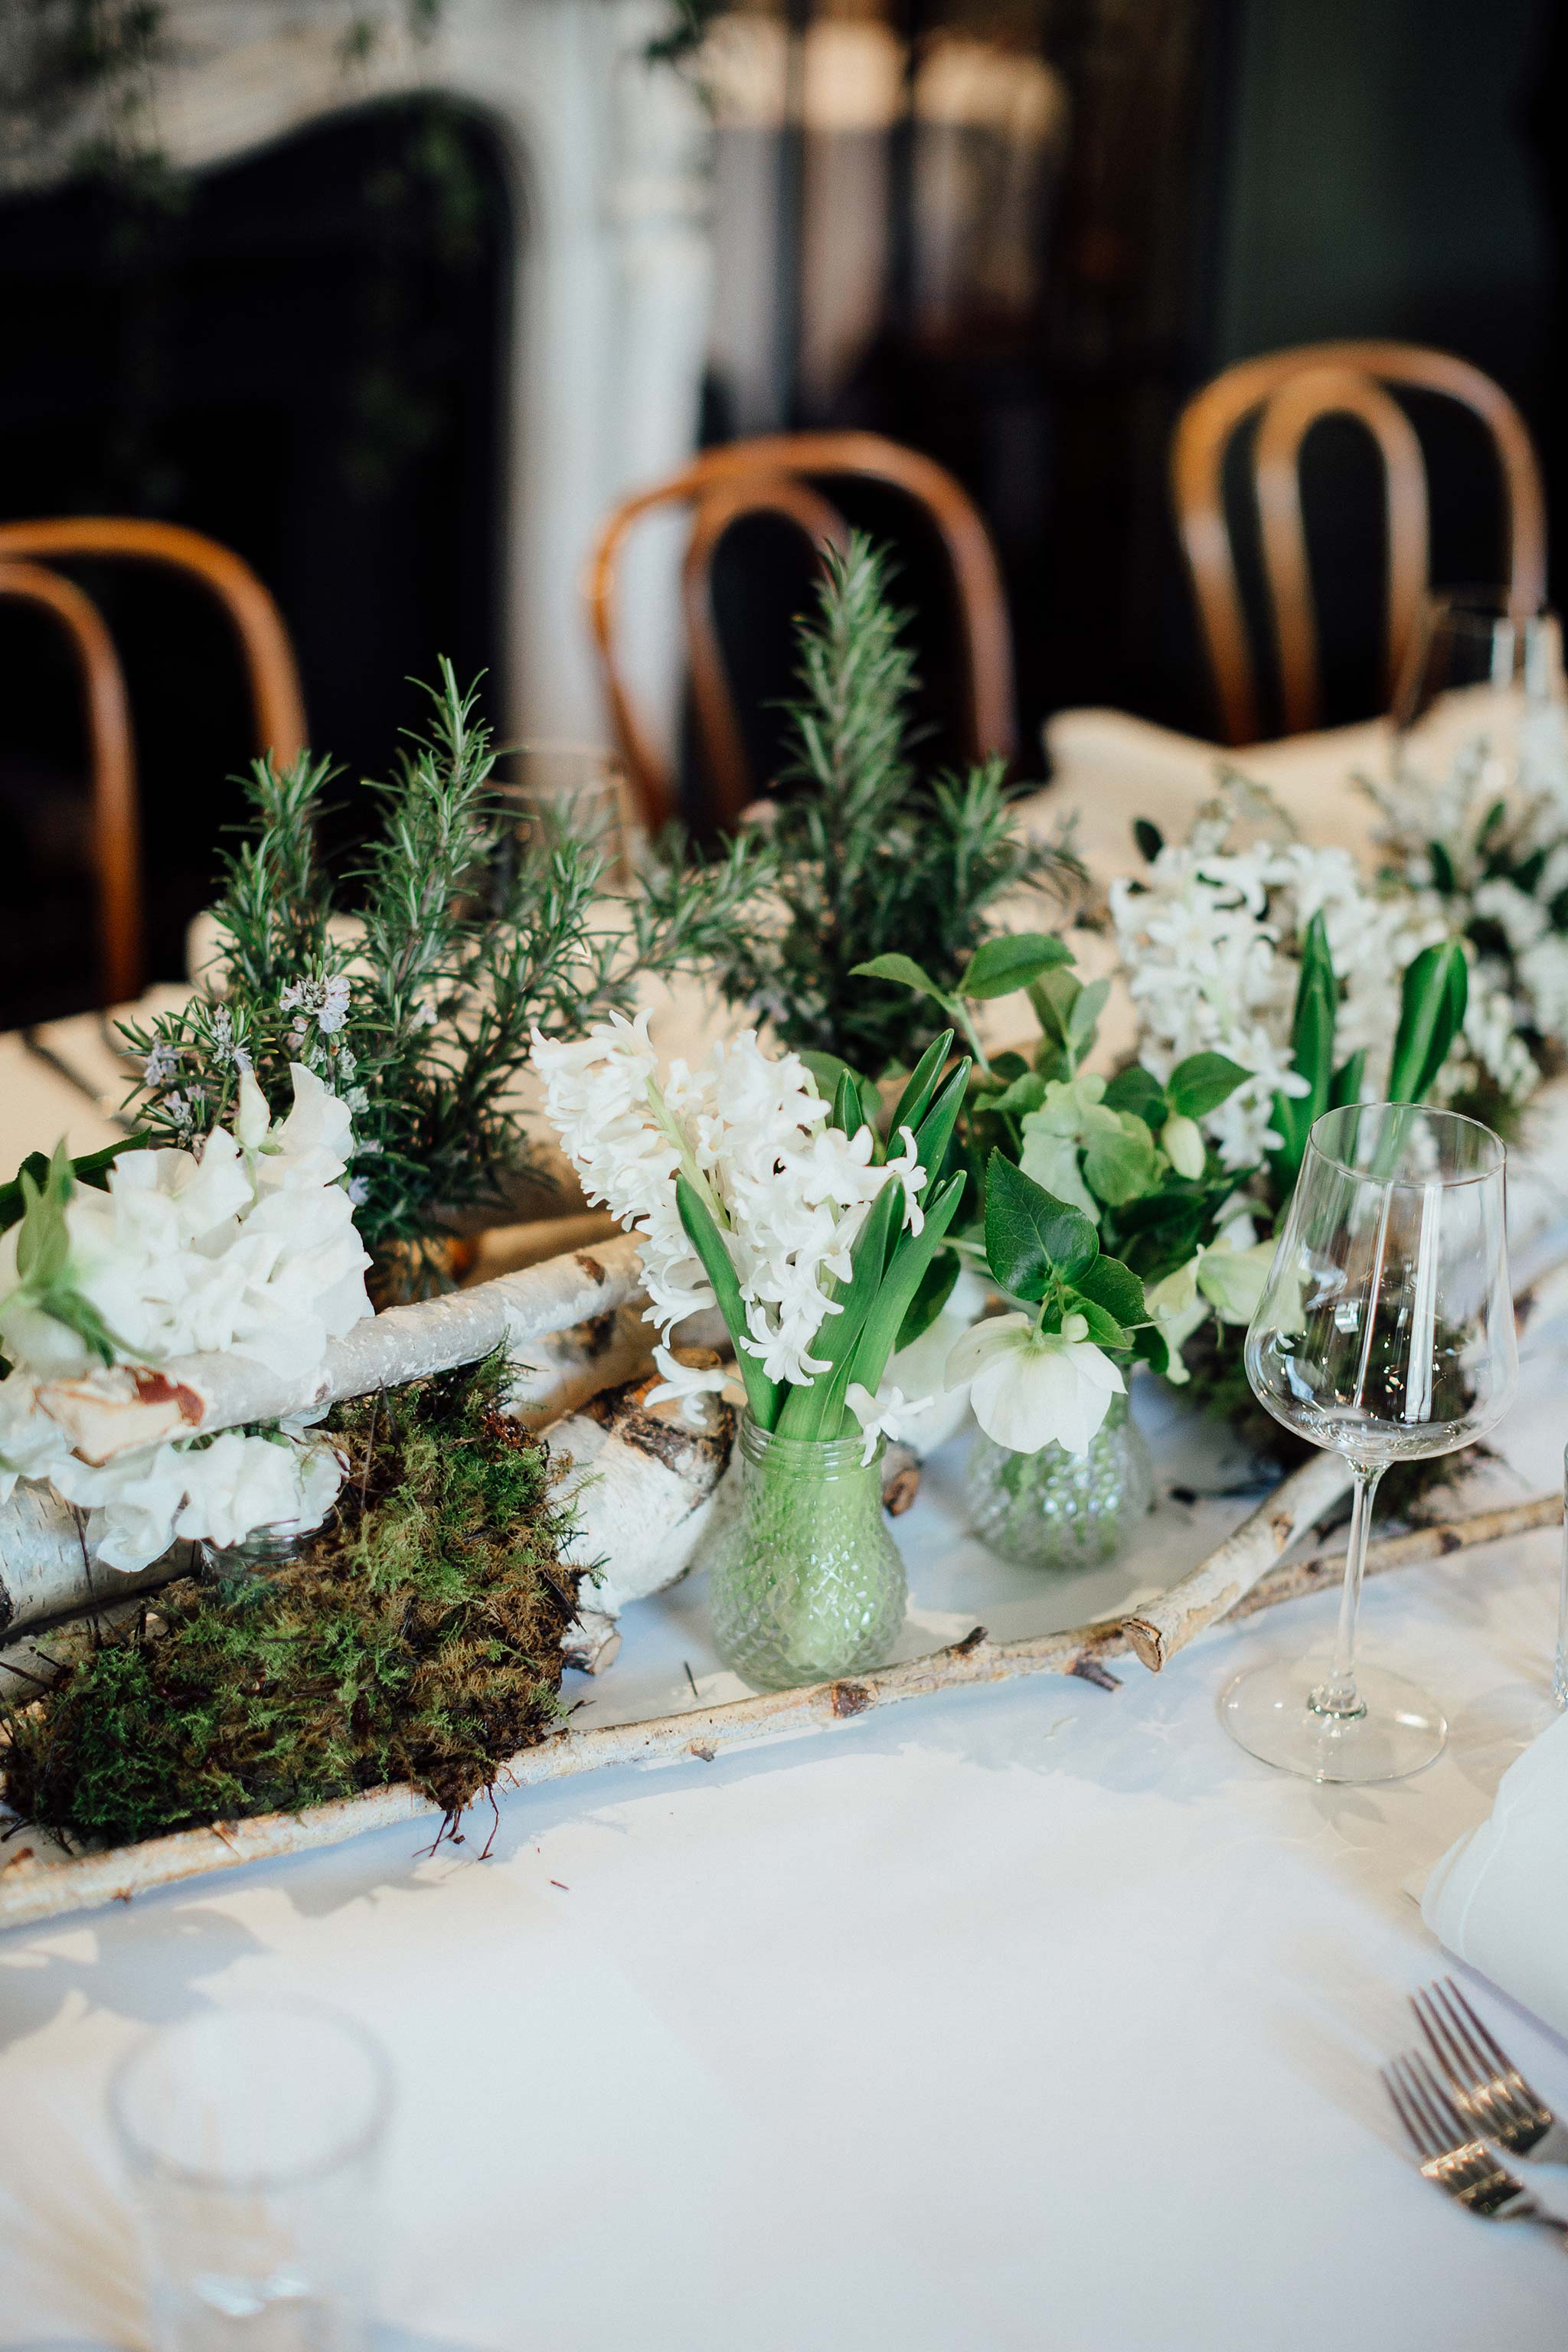 melbourne-entrecote-wedding-ceremony-flower-arrangement